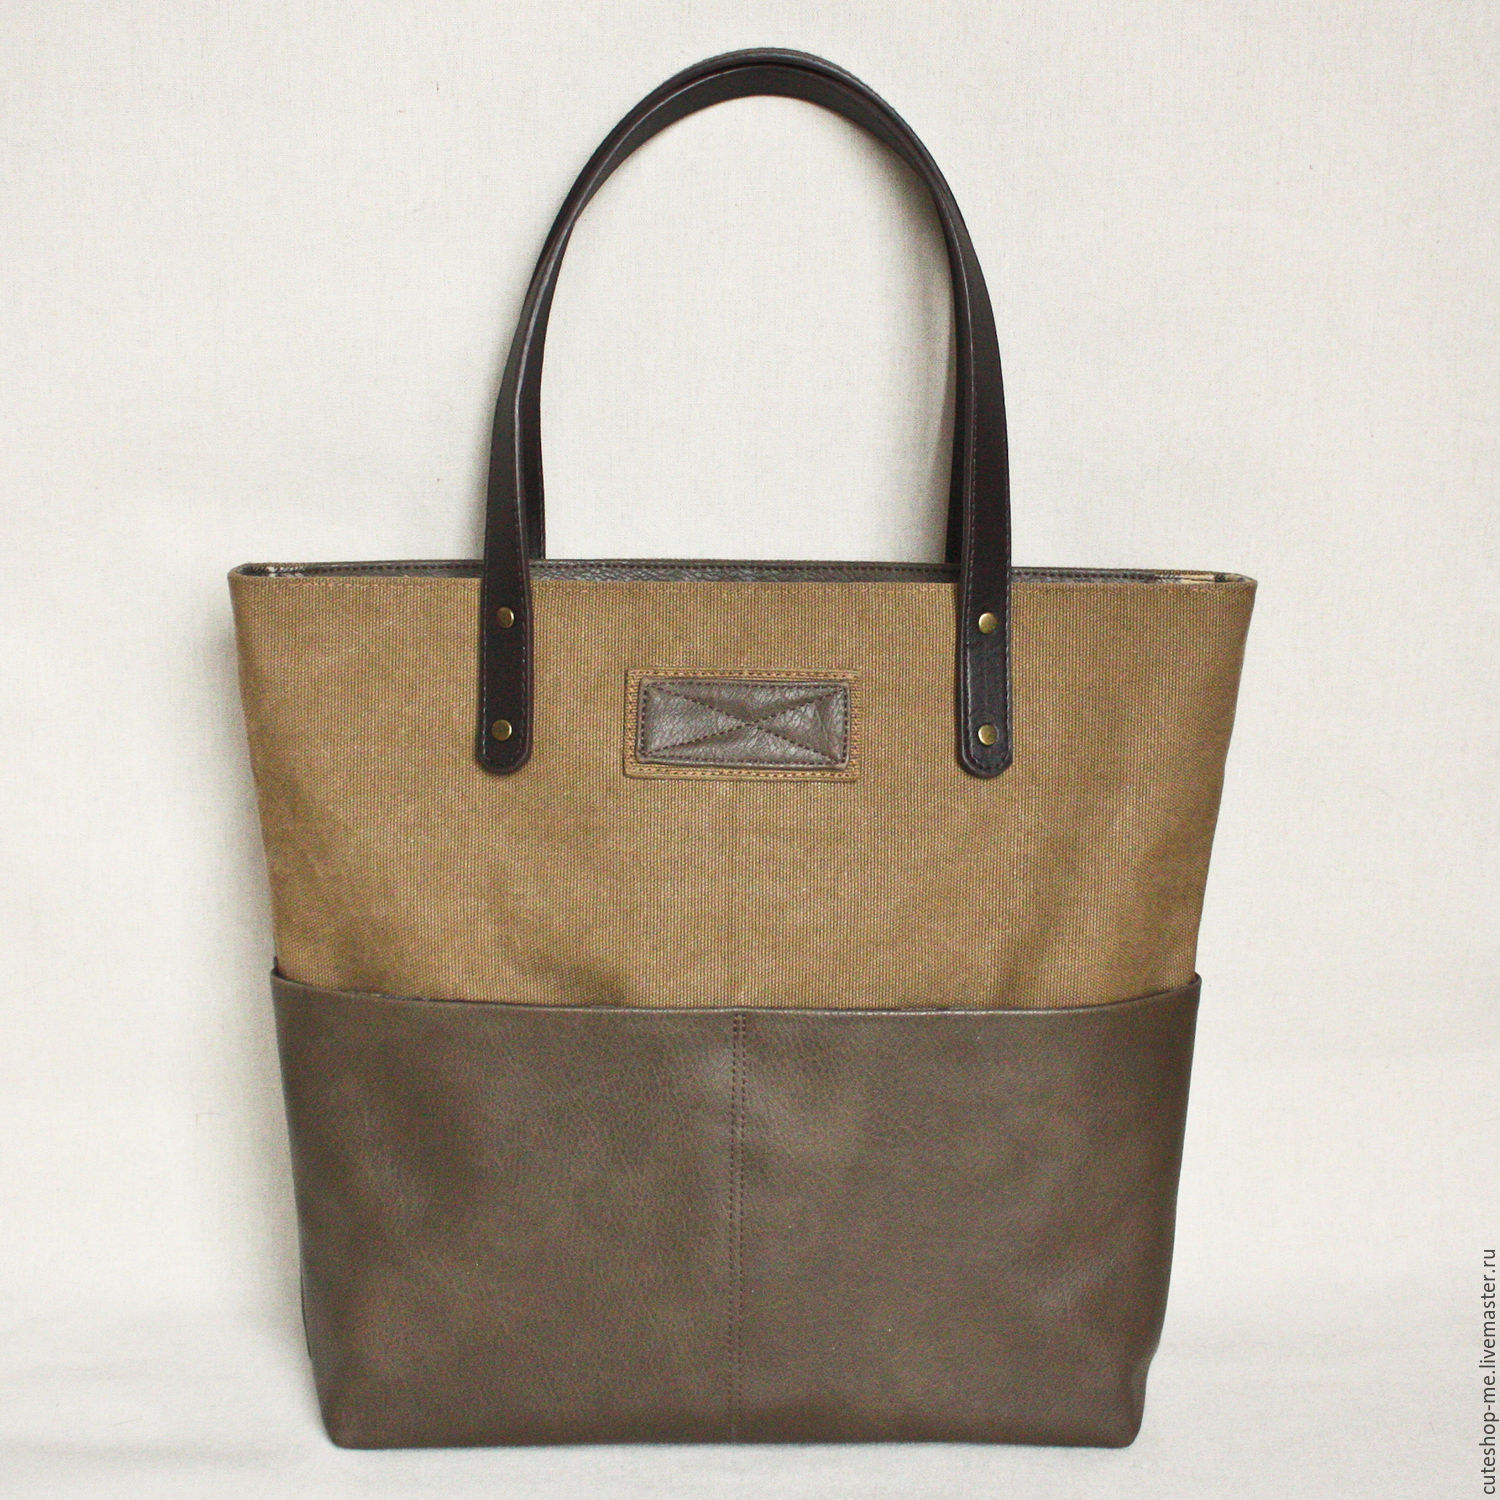 Handbags Handmade Livemaster Camel Color Bag Made Of Canvas And Eco